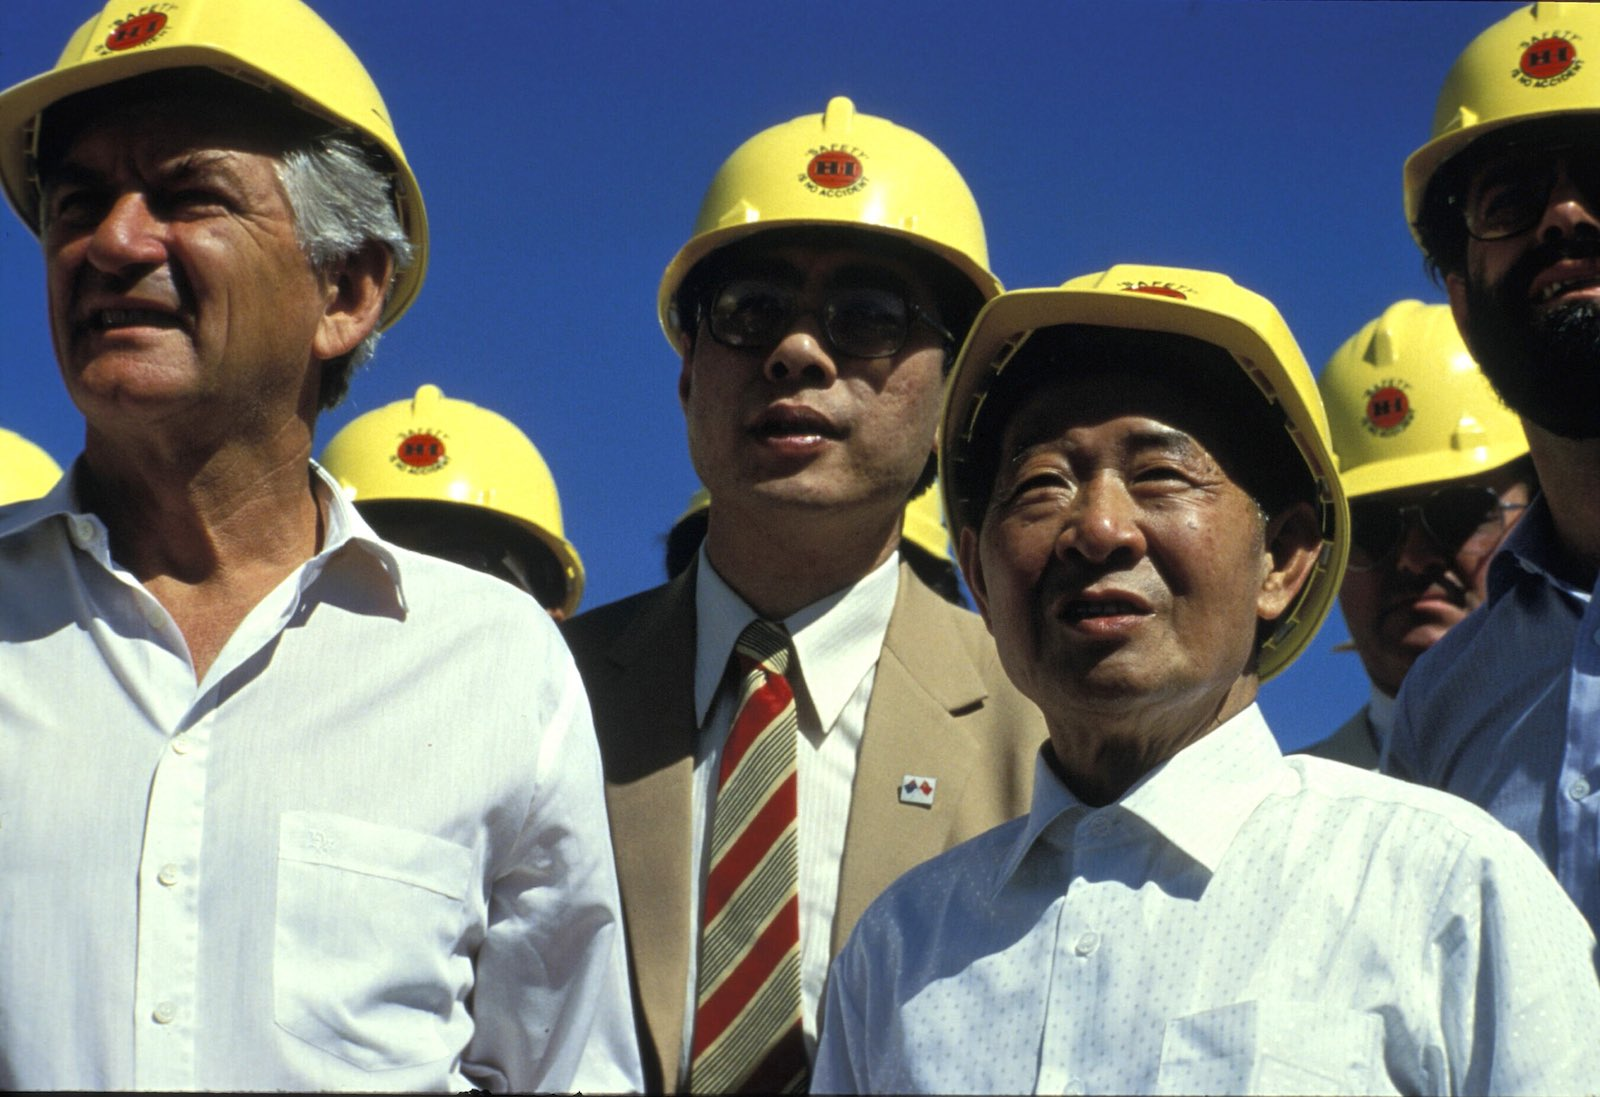 Bob Hawke hosting China's Hu Yaobang in 1985 at what would become Channar Mine, Pilbara (Photo: Patrick Riviere/Getty)